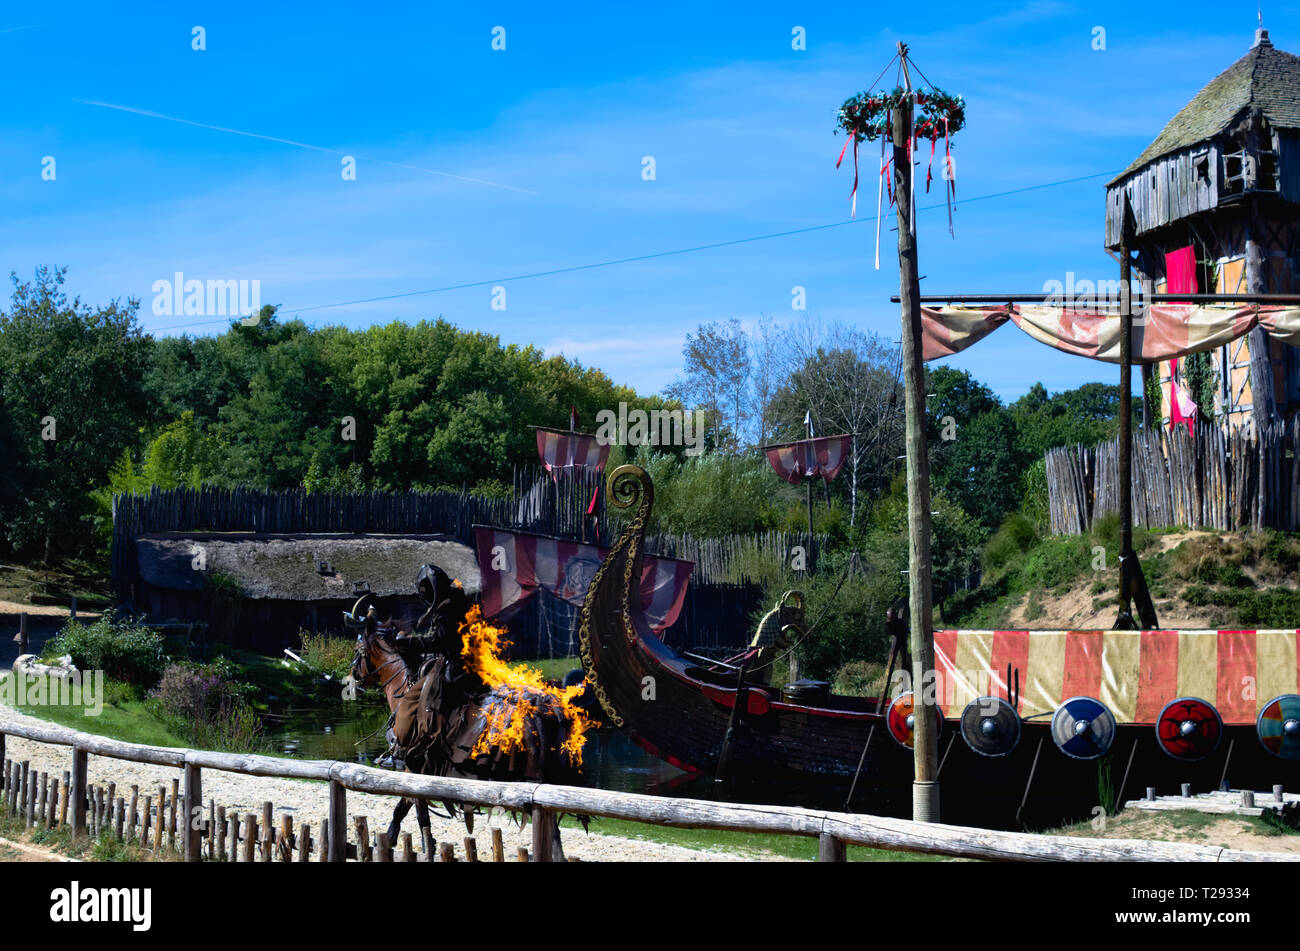 Les Epesses, France - September‎ ‎8‎, ‎2018 : Vikings show from Puy du fou where a stunt man is riding a horse set on fire Stock Photo